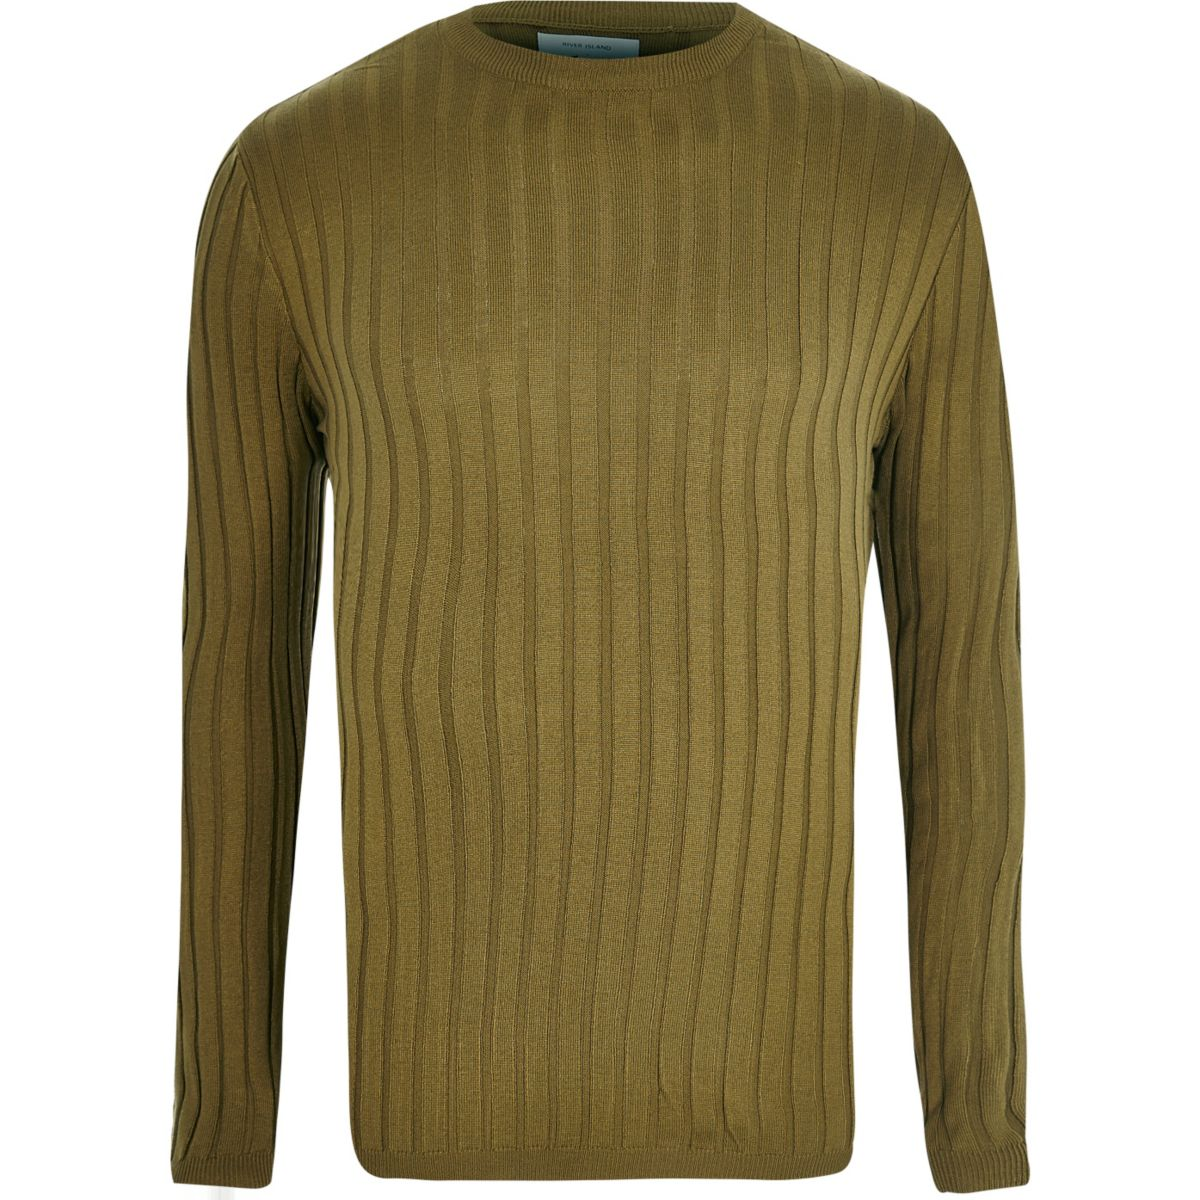 Khaki green ribbed muscle fit sweater